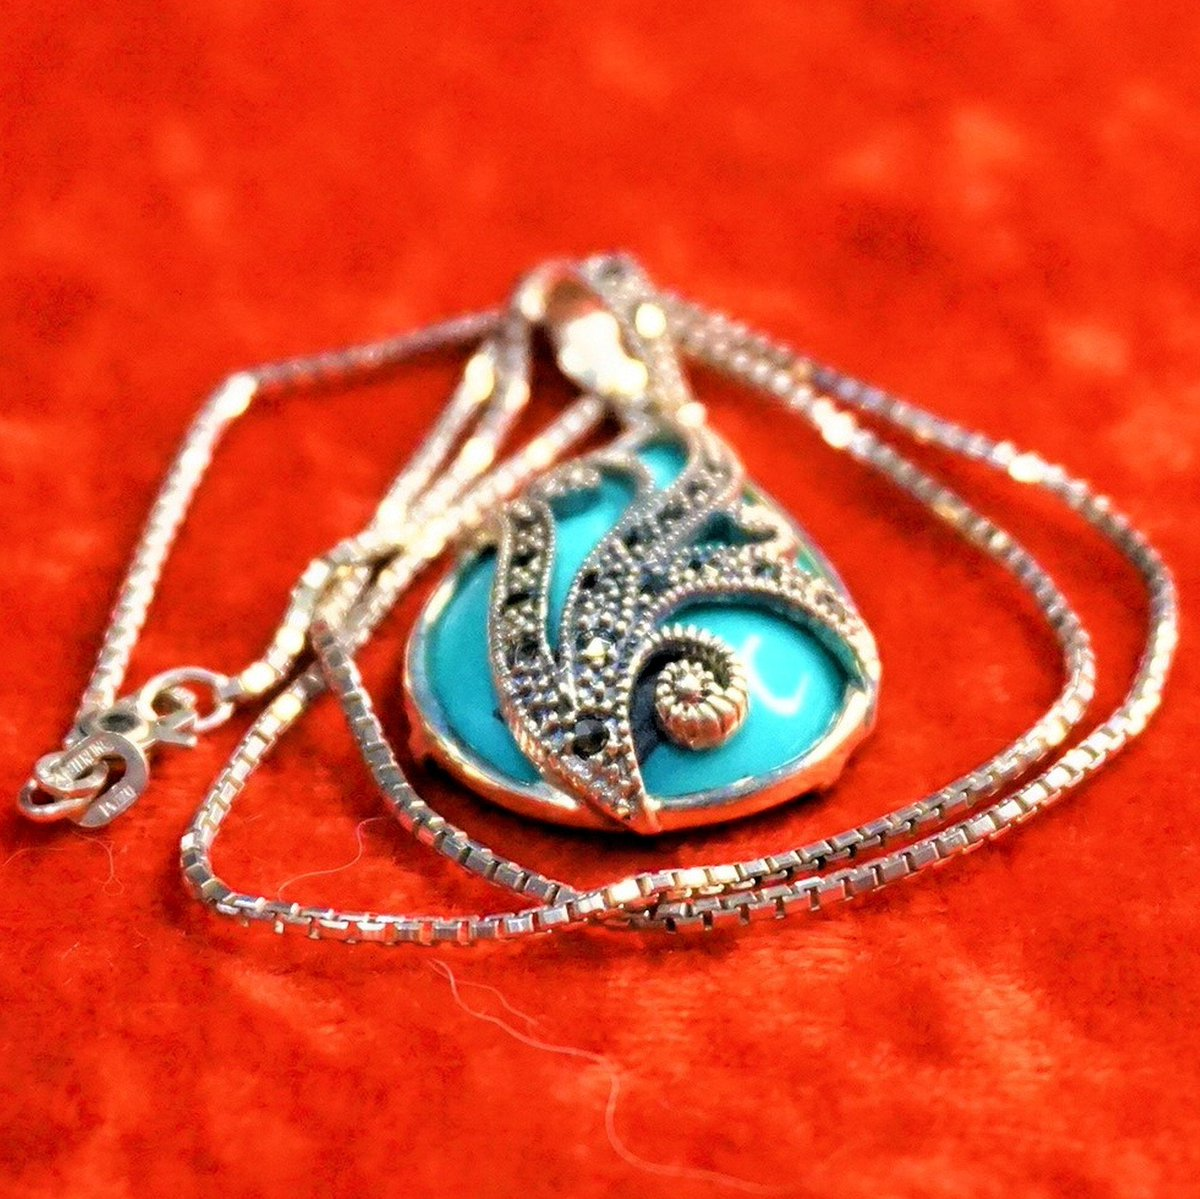 Excited to share the latest addition to my #etsy shop: Sterling Silver & Turquoise Pendant And Chain Necklace, Vintage Rare Find Unique Collectible Quality Hallmarked Fine Jewelry, Gift For Her.  #blue #box #gold #no #turquoise #women #stone #int